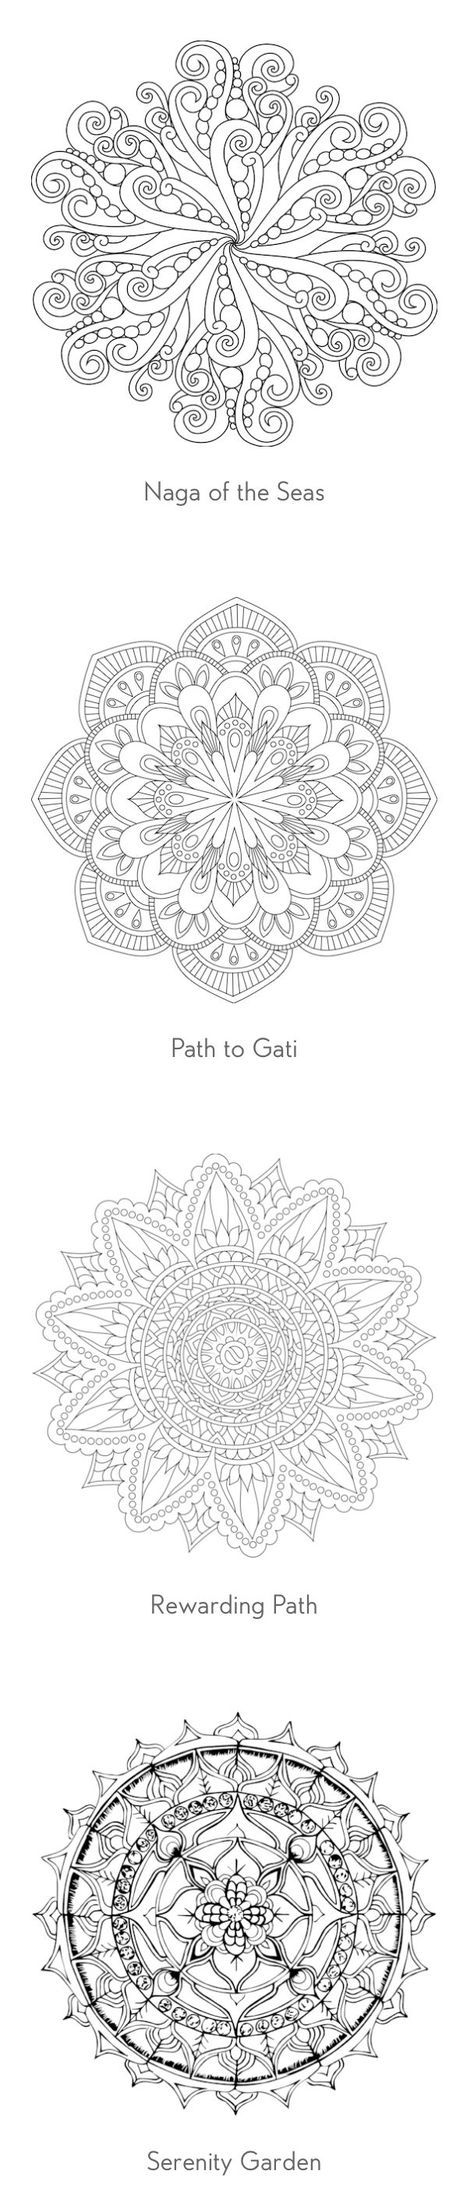 26 best mandala coloring pages images on pinterest coloring books adult coloring pages and - Mandala adulte ...